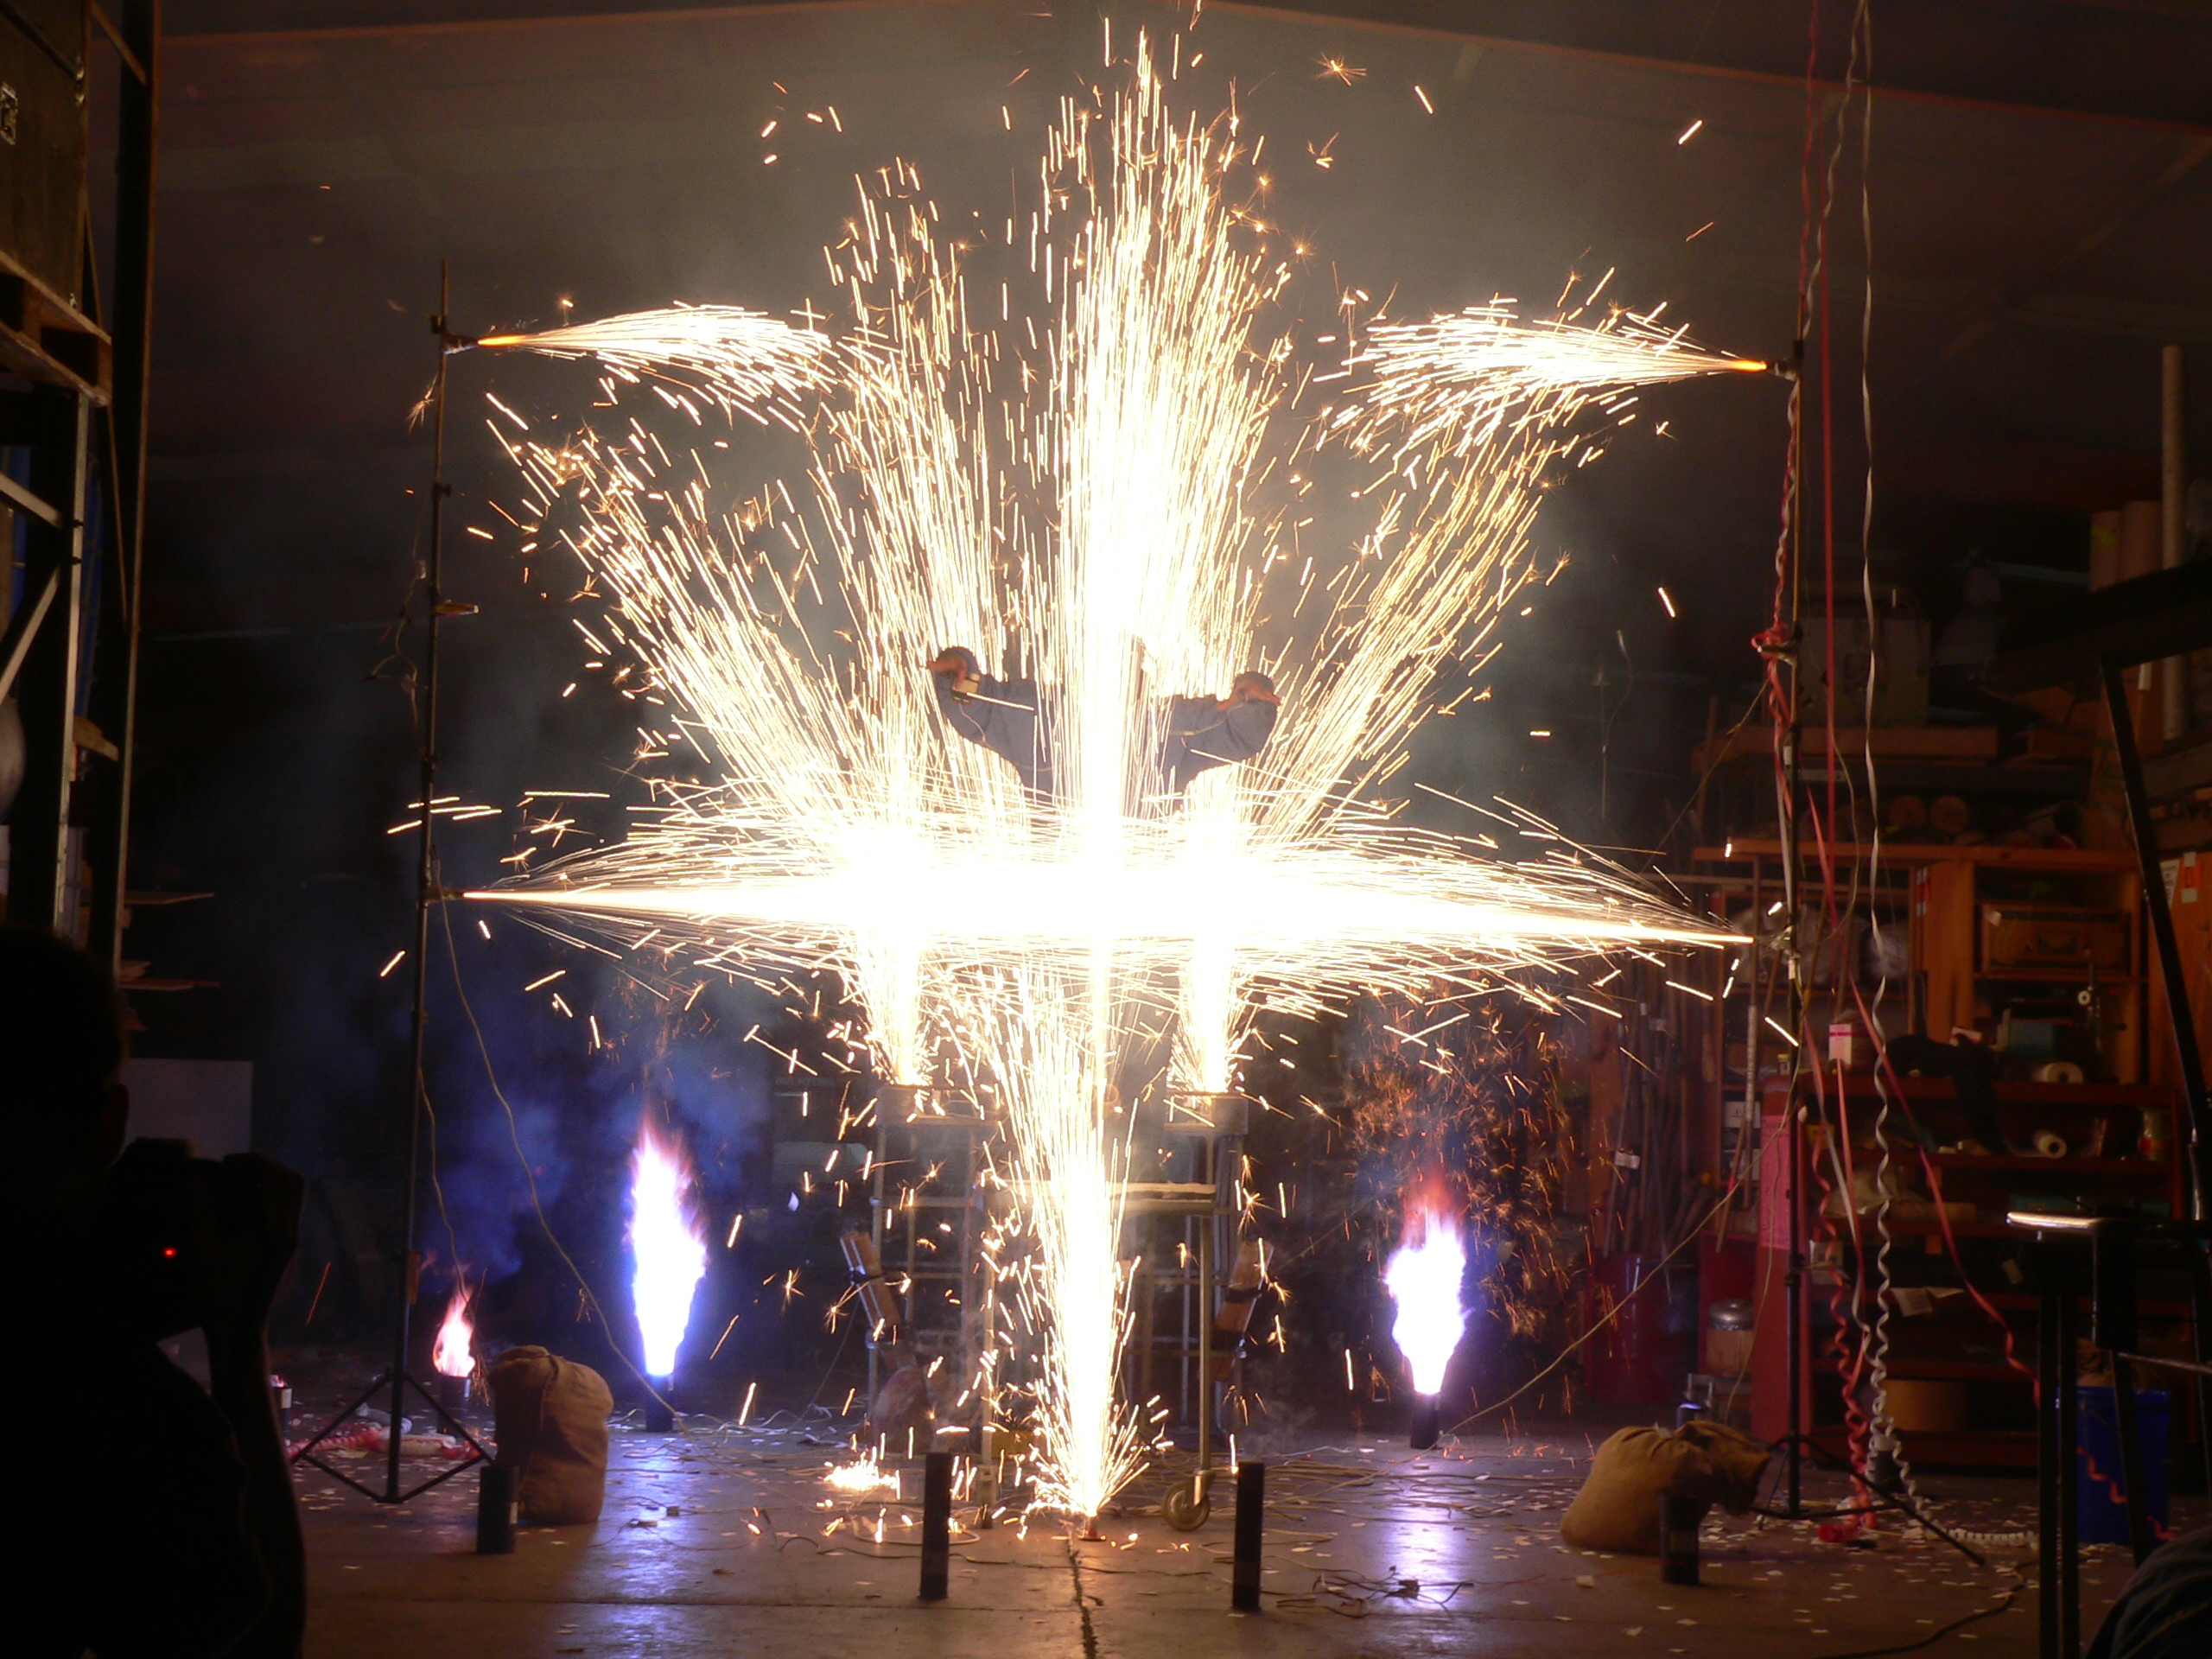 Indoor fireworks demonstration